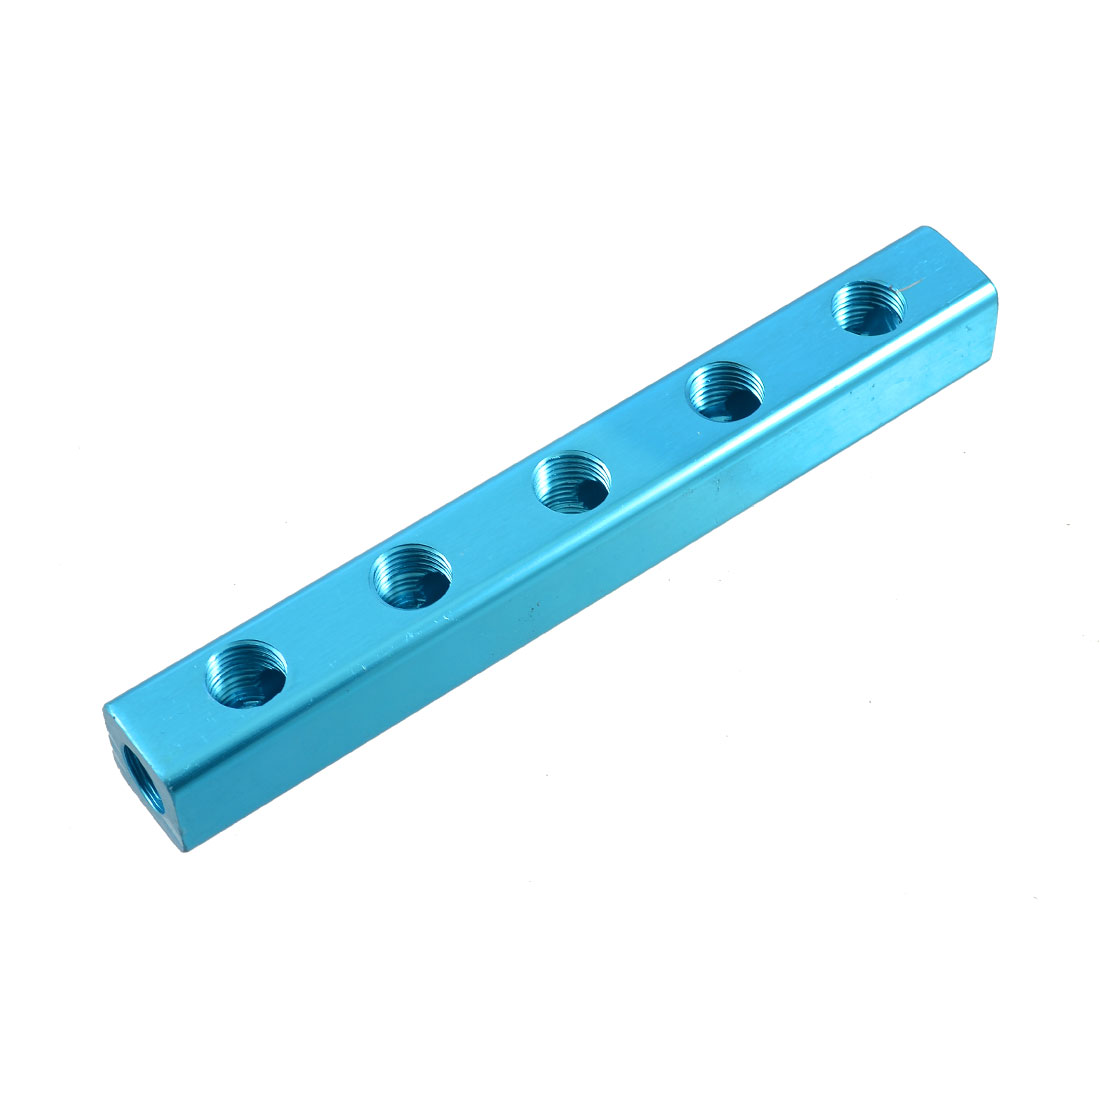 Blue Aluminum Quick Connect 5 Way Air Manifold Splitter